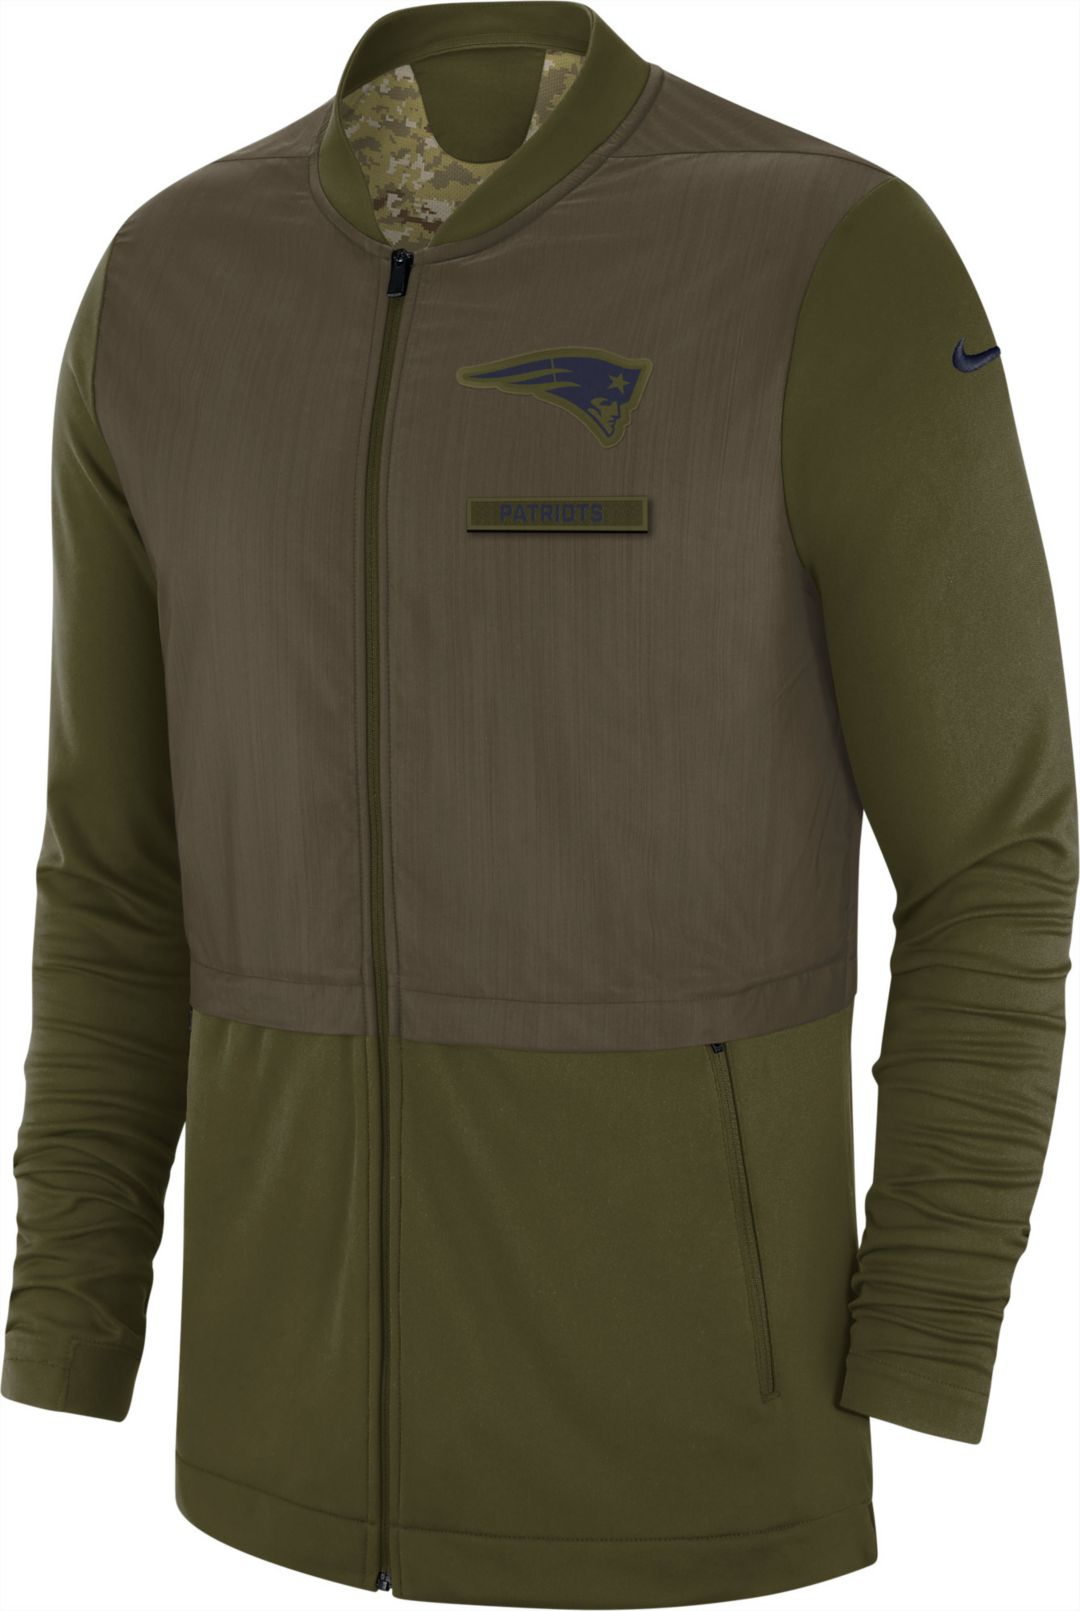 new styles 60bce a8afe Nike Men's Salute to Service New England Patriots Hybrid Full-Zip Jacket